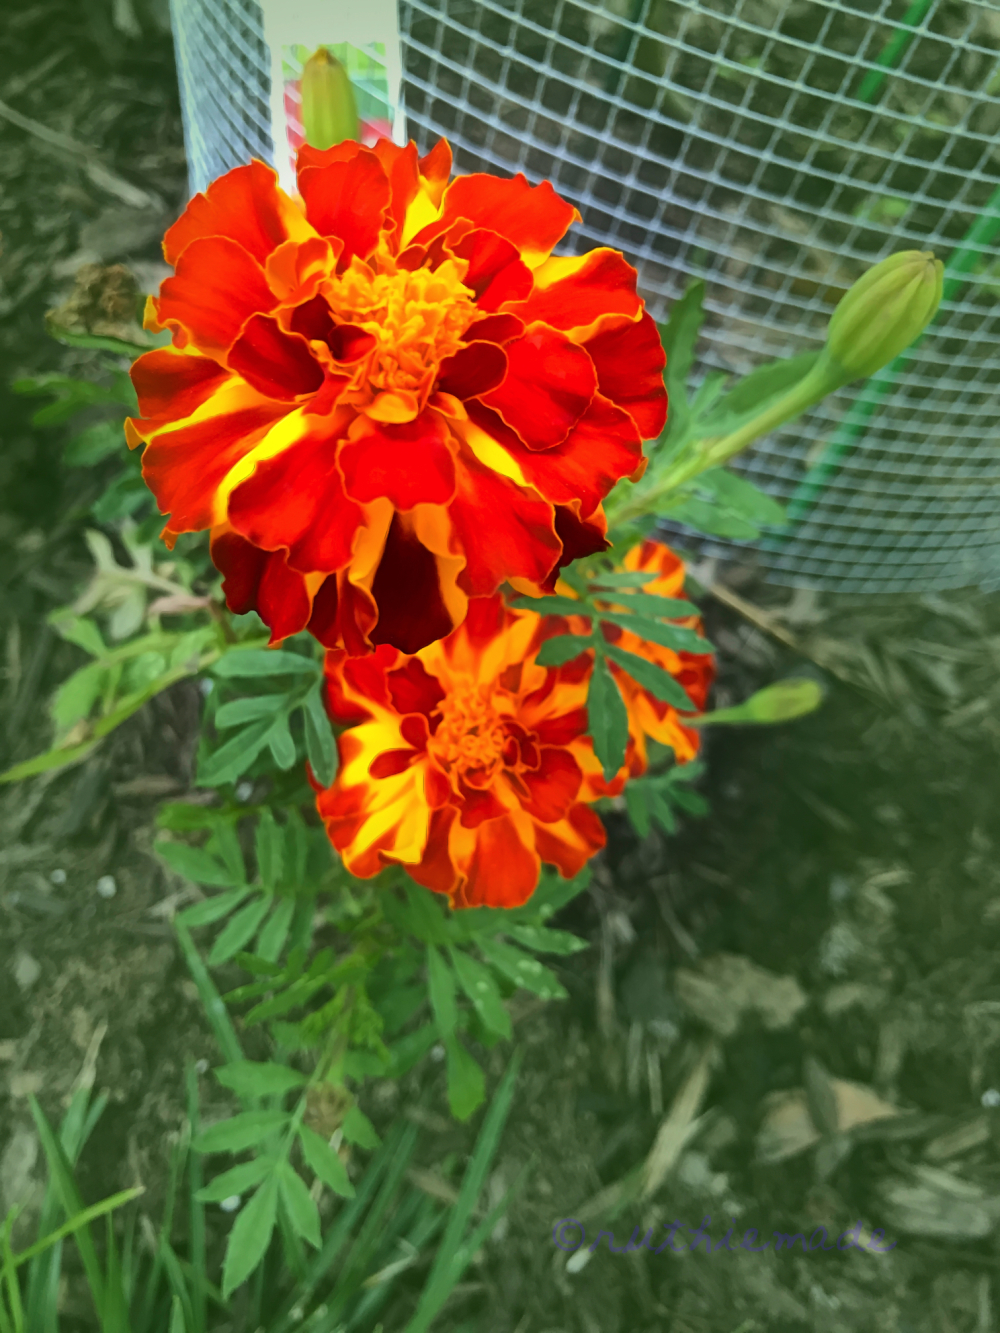 Marigold in June